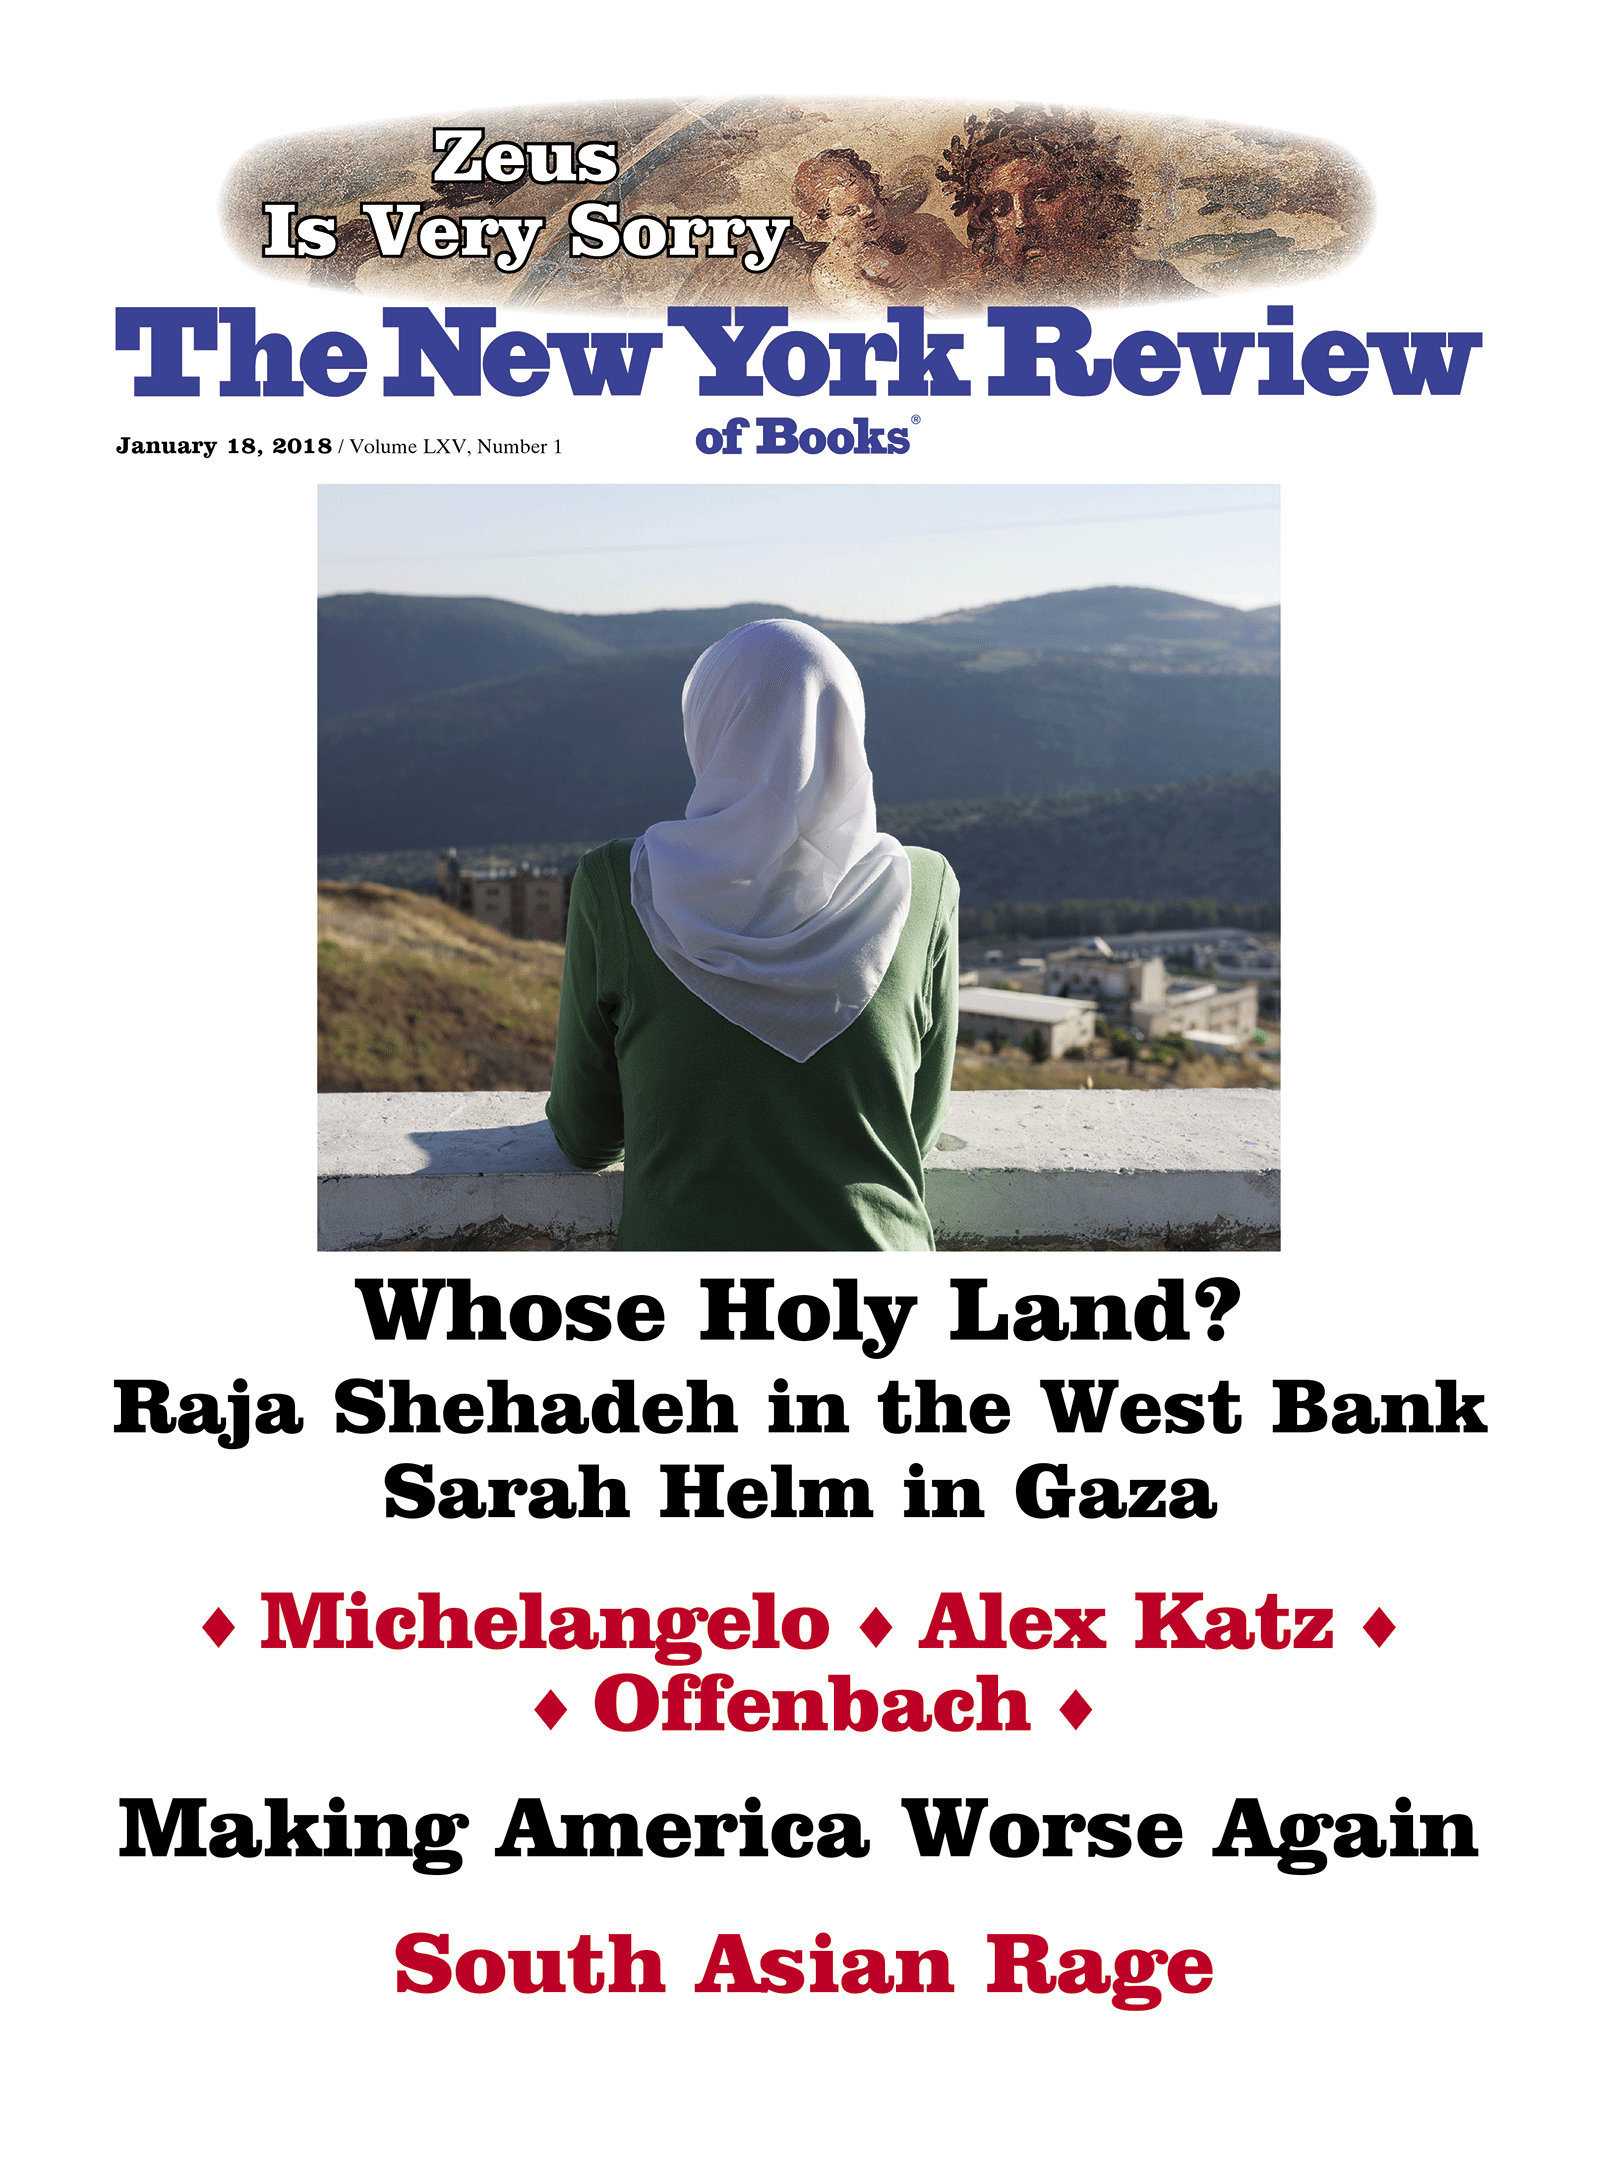 Image of the January 18, 2018 issue cover.